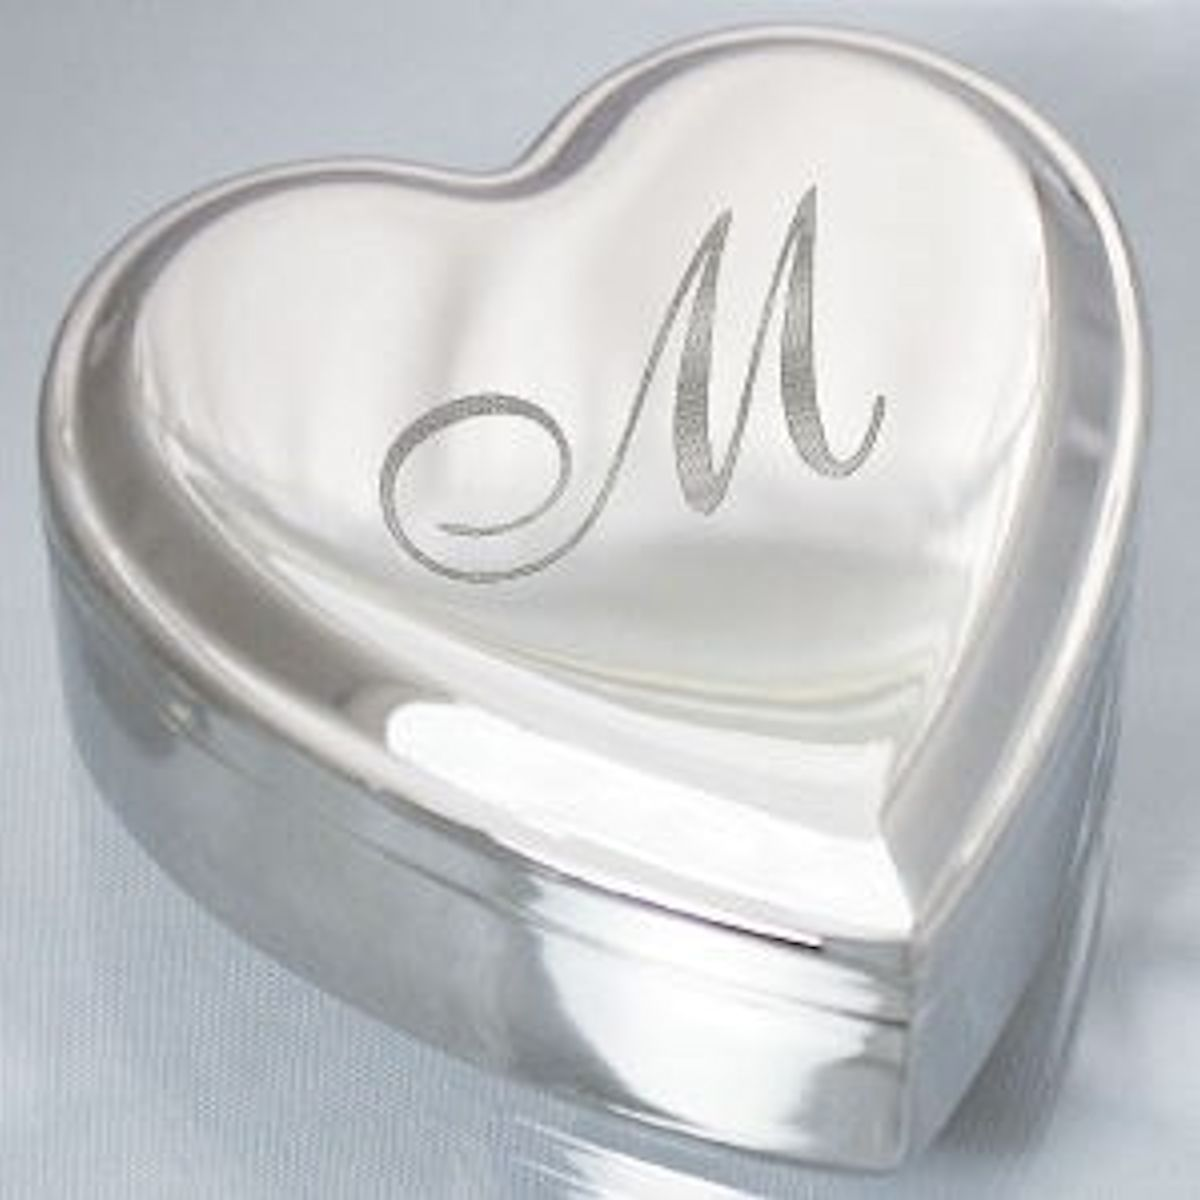 engraved jewelry box for baby